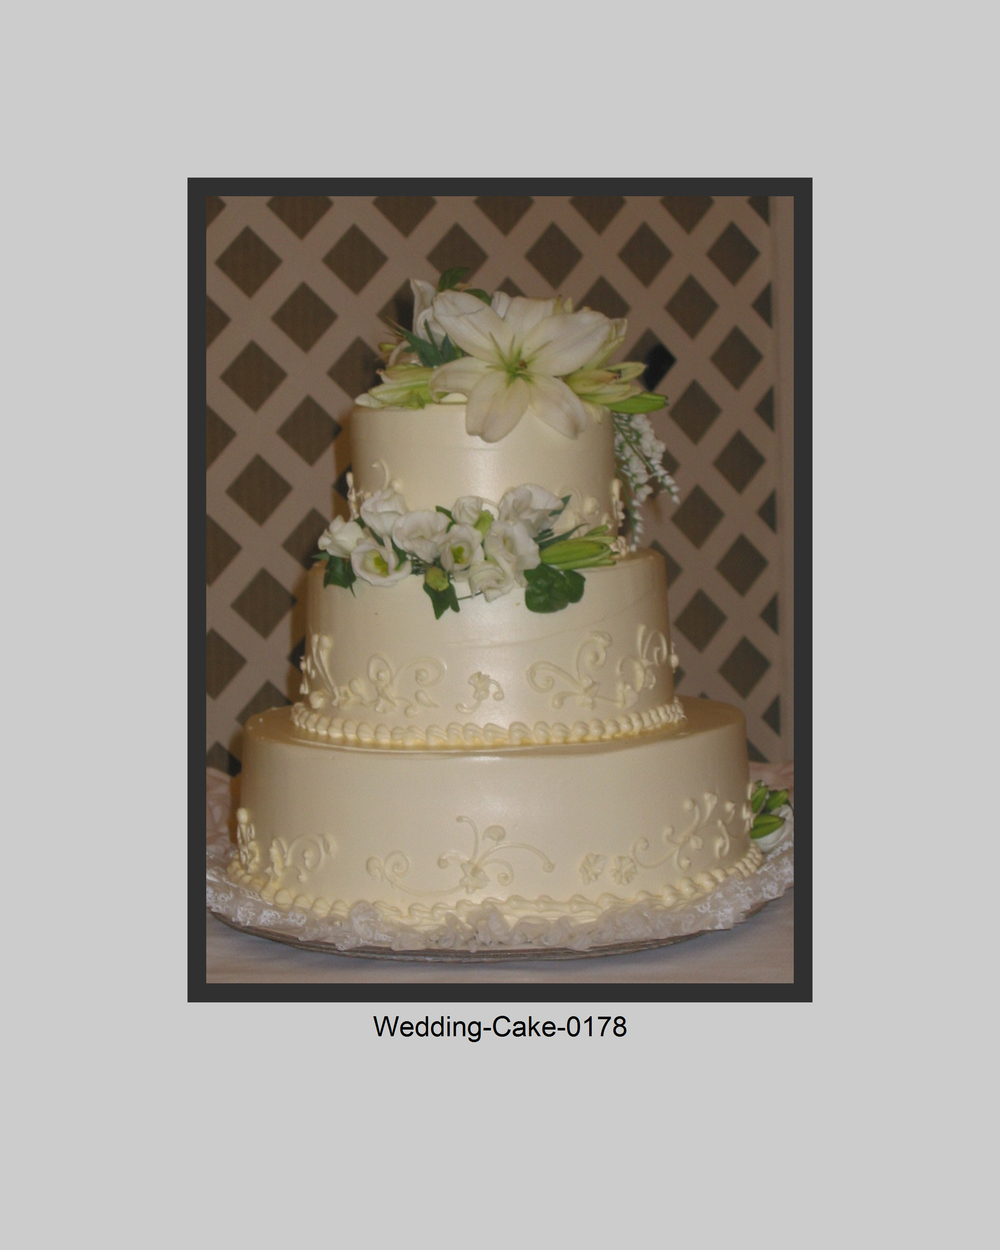 Wedding-Cake-Prints-0178.jpg